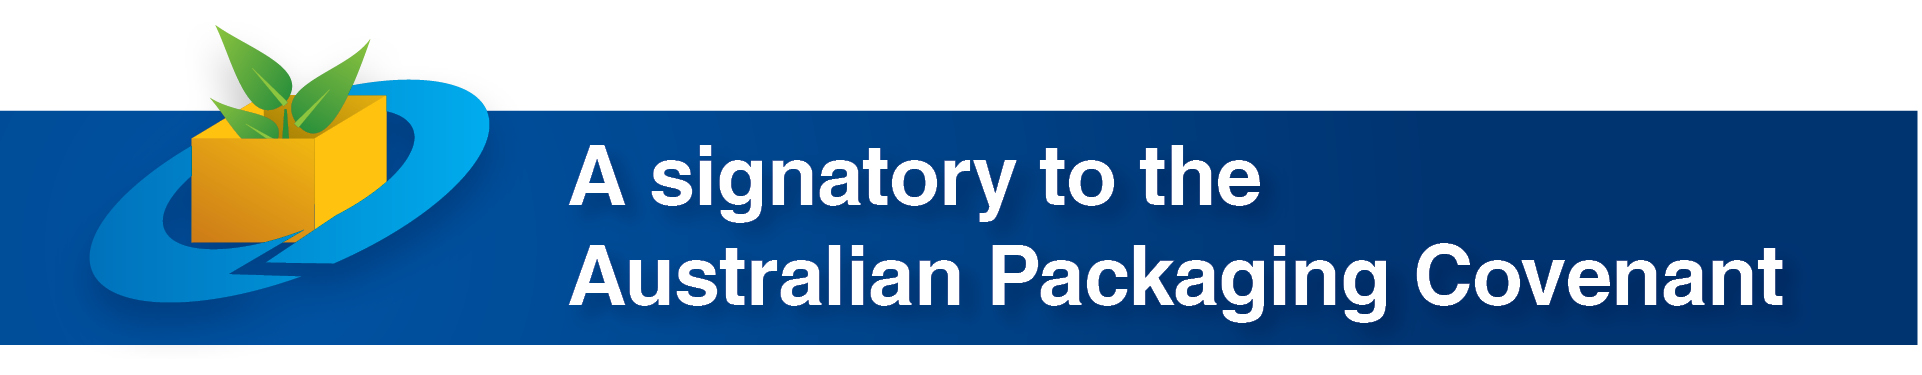 signatory-aust-packaging-covenant.jpg